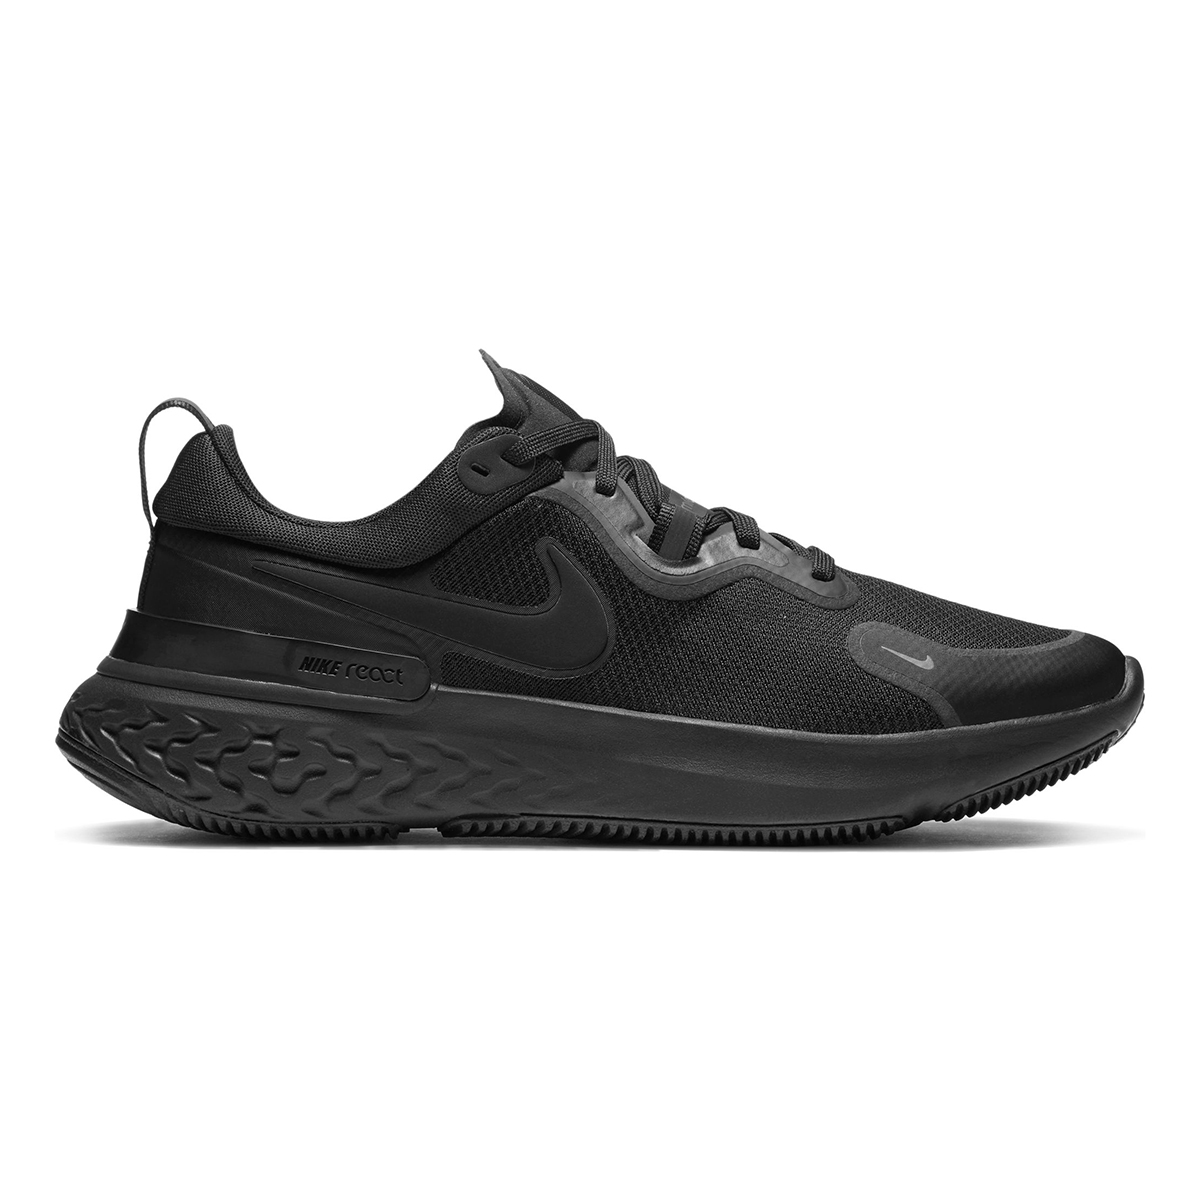 Men's Nike React Miler Running Shoe - Color: Black/Iron Grey/White/Black - Size: 6 - Width: Regular, Black/Iron Grey/White/Black, large, image 1